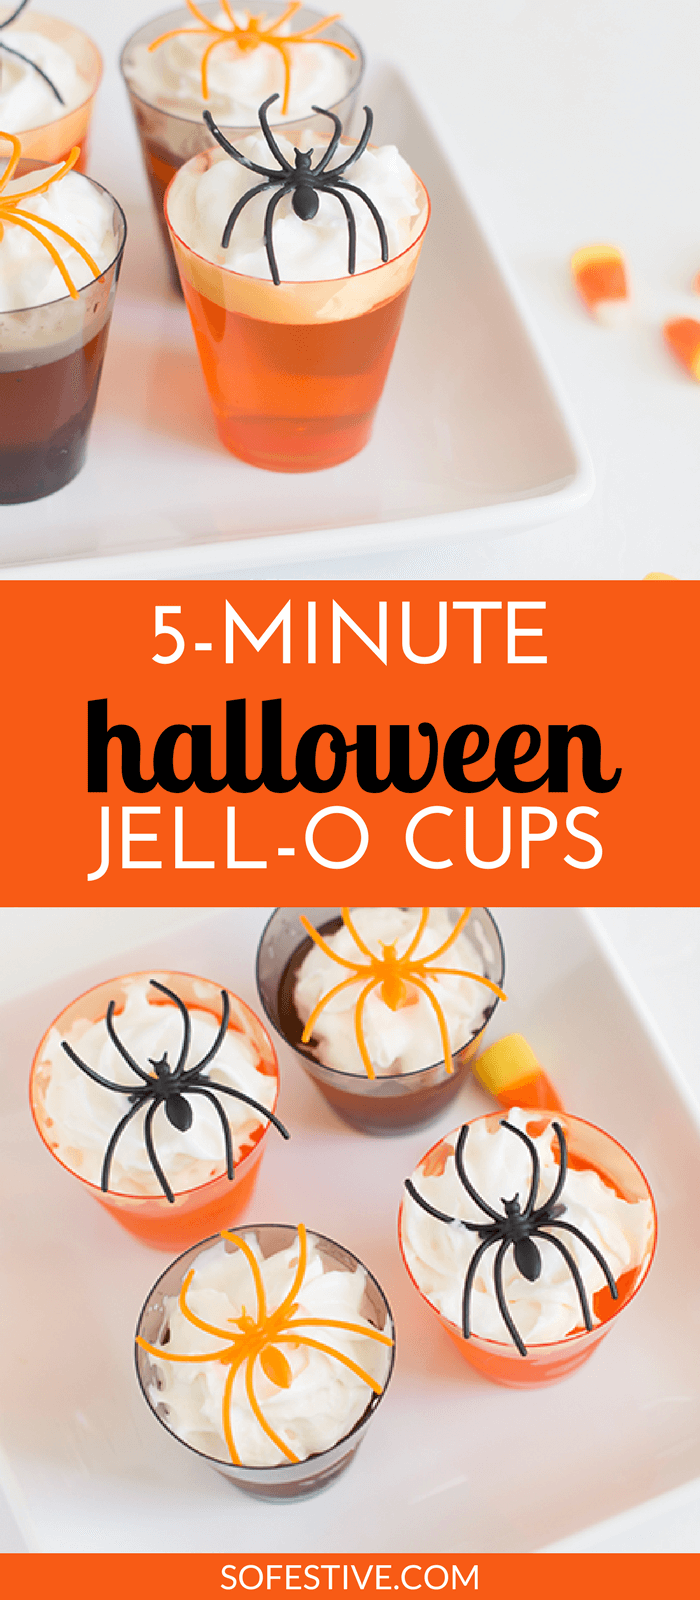 5-Minute Halloween Jello Dessert Cups- Spider Shots- Halloween Food Ideas